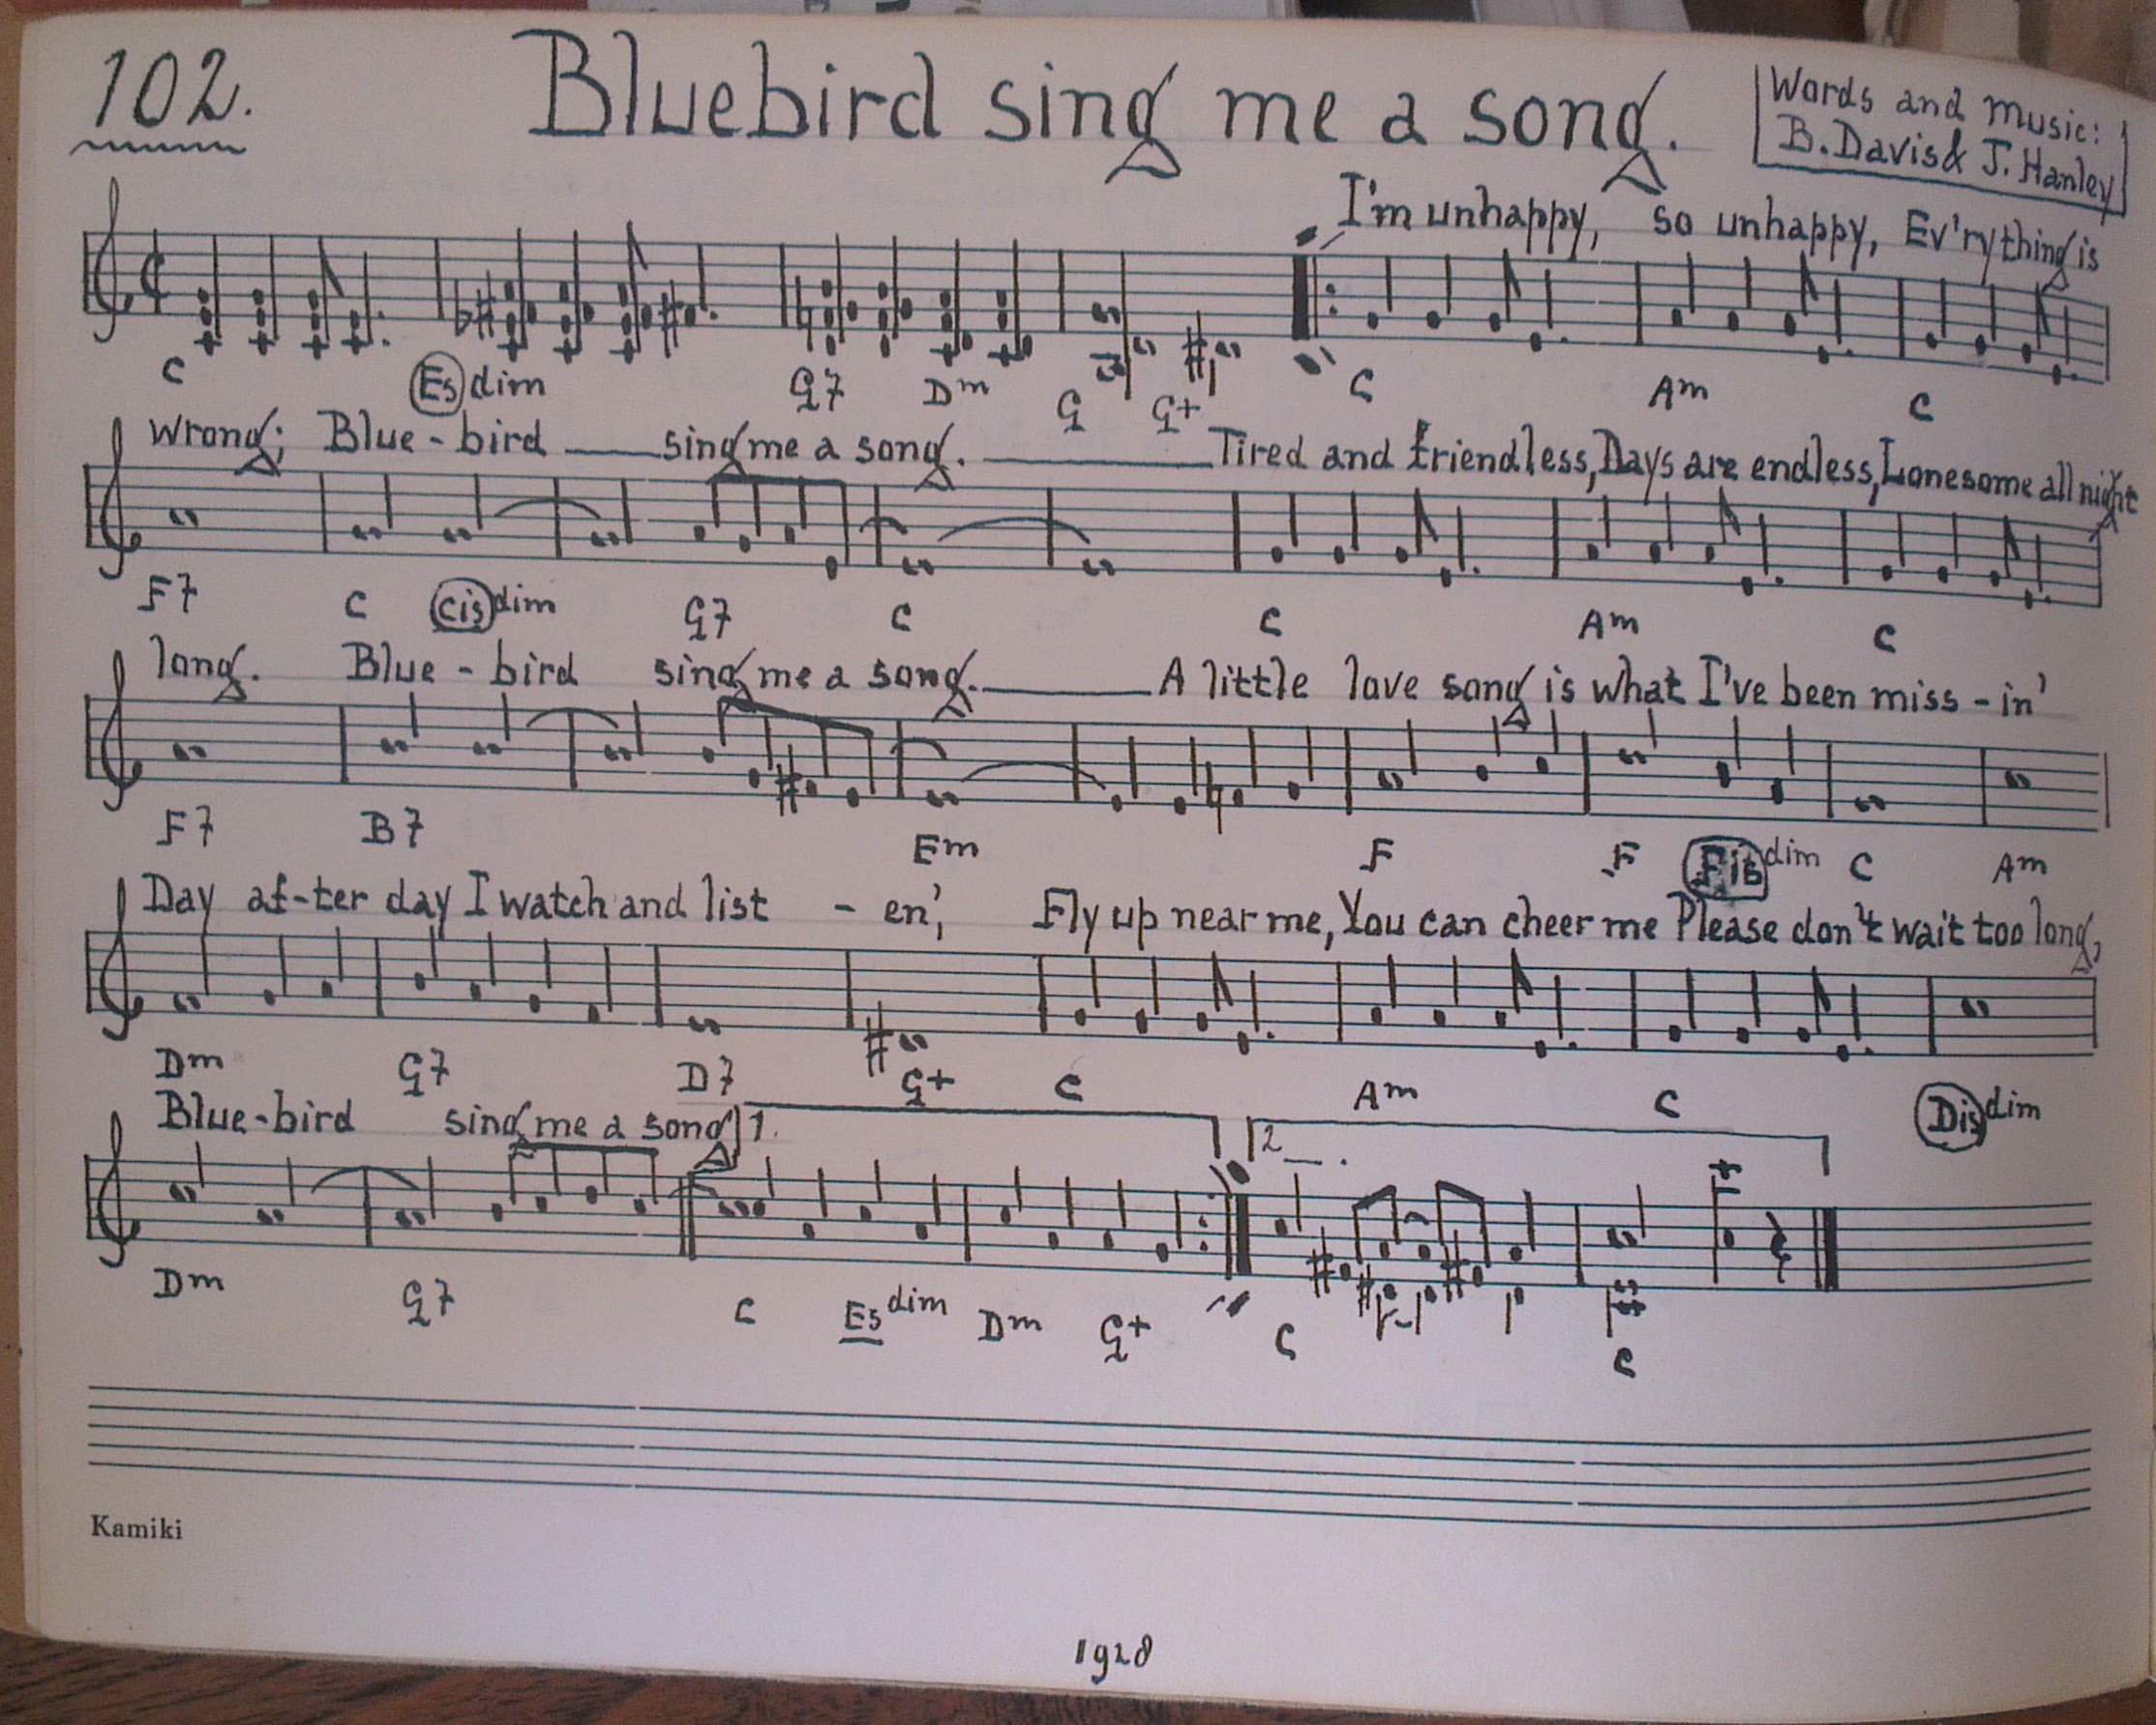 Blue bird sing me a song - 1928